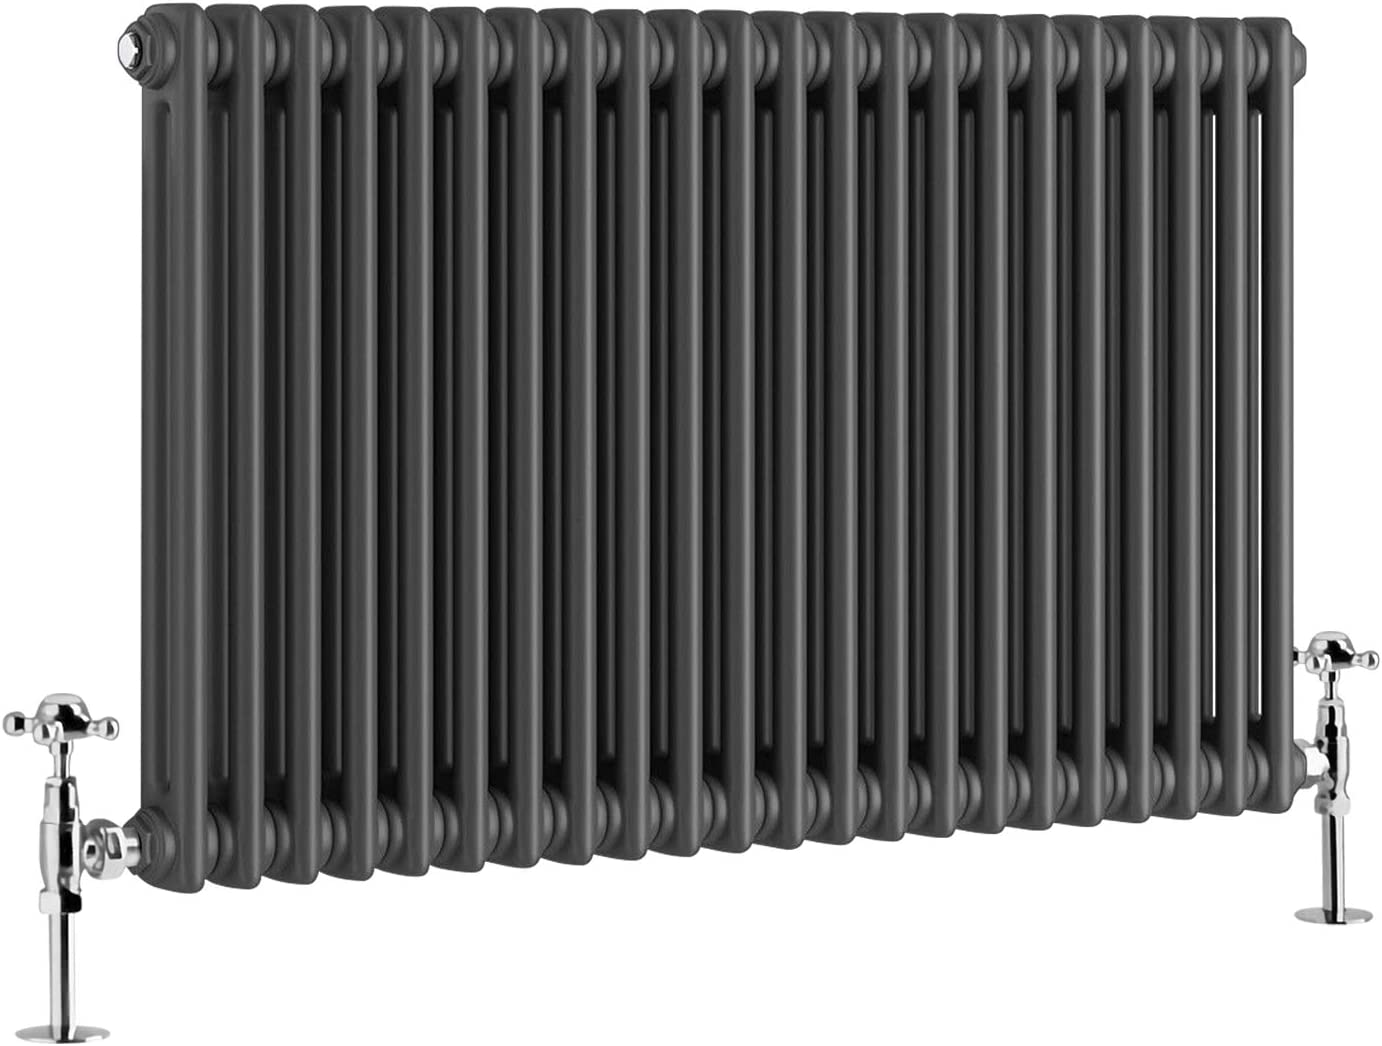 NRG 600x425 Traditional Colosseum Cast Iron Bathroom Radiator Anthracite 3 Panel